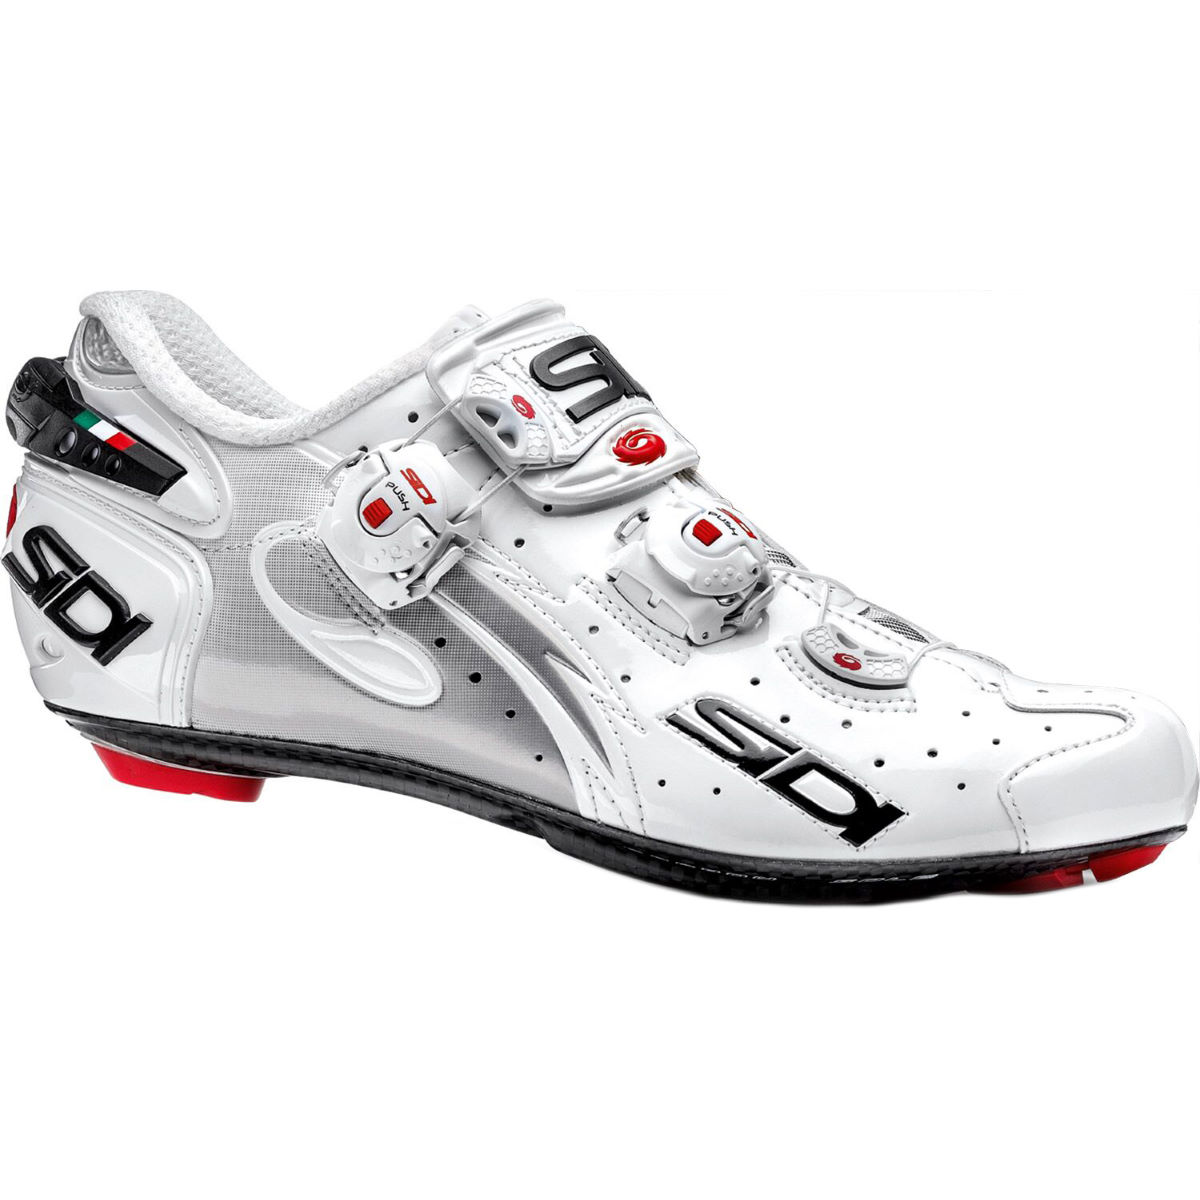 Sidi Women's Wire Carbon Road Shoe - 39.5 White/White | Road Shoes